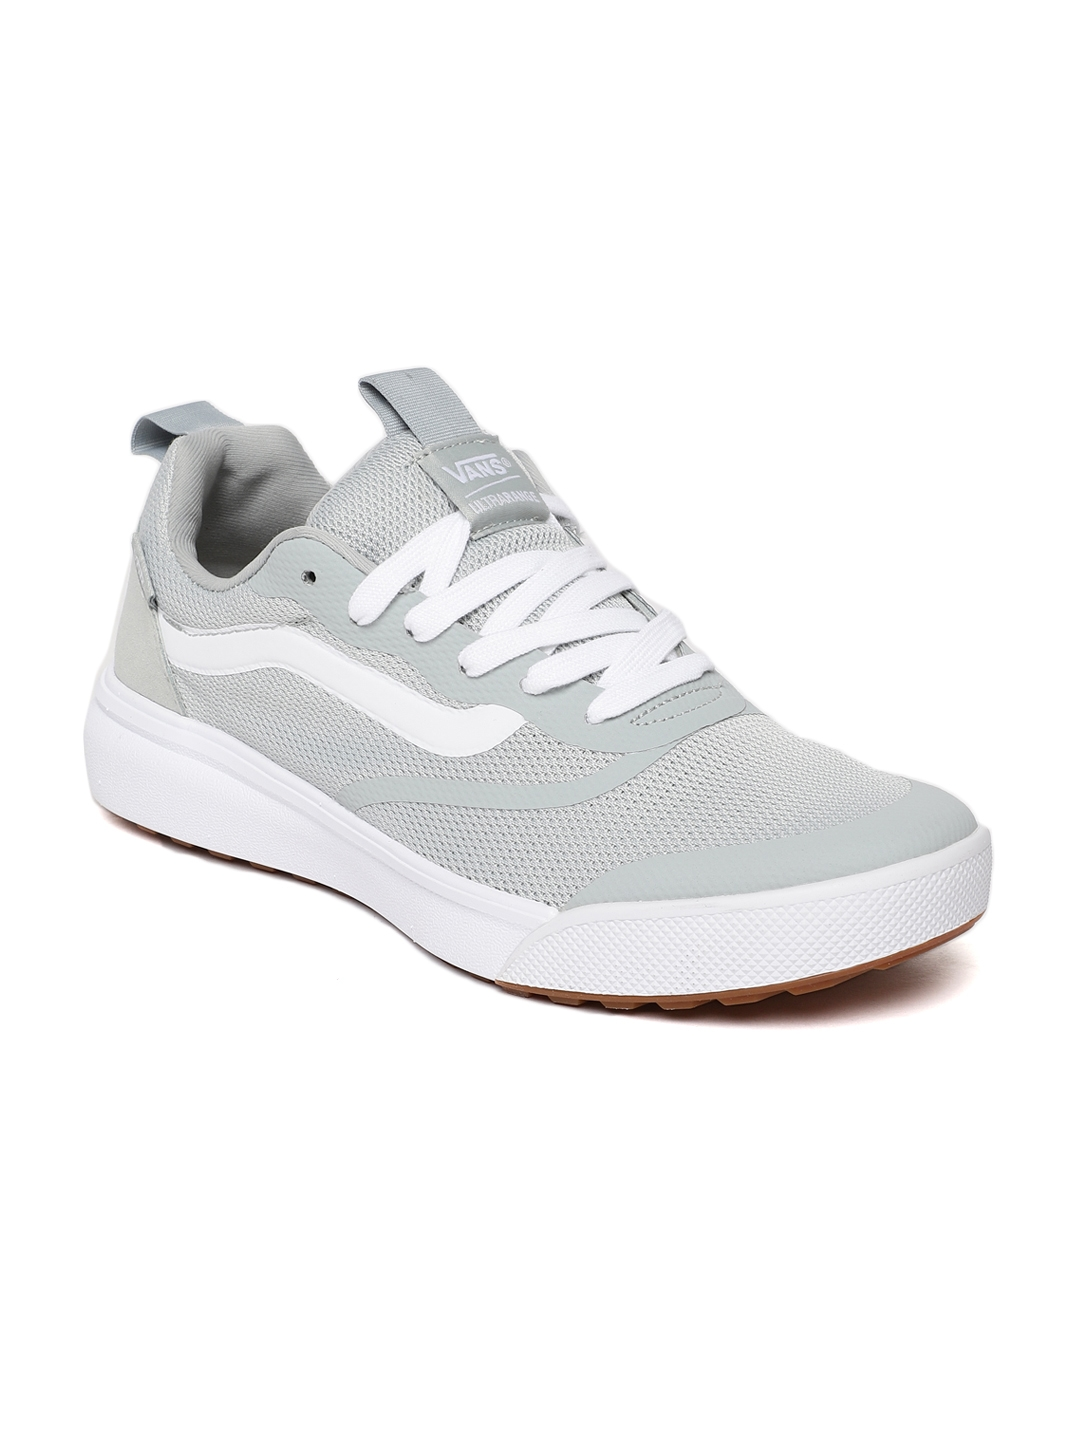 edbc871e1a Buy Vans Unisex Grey UltraRange Rapidweld Sneakers - Casual Shoes ...